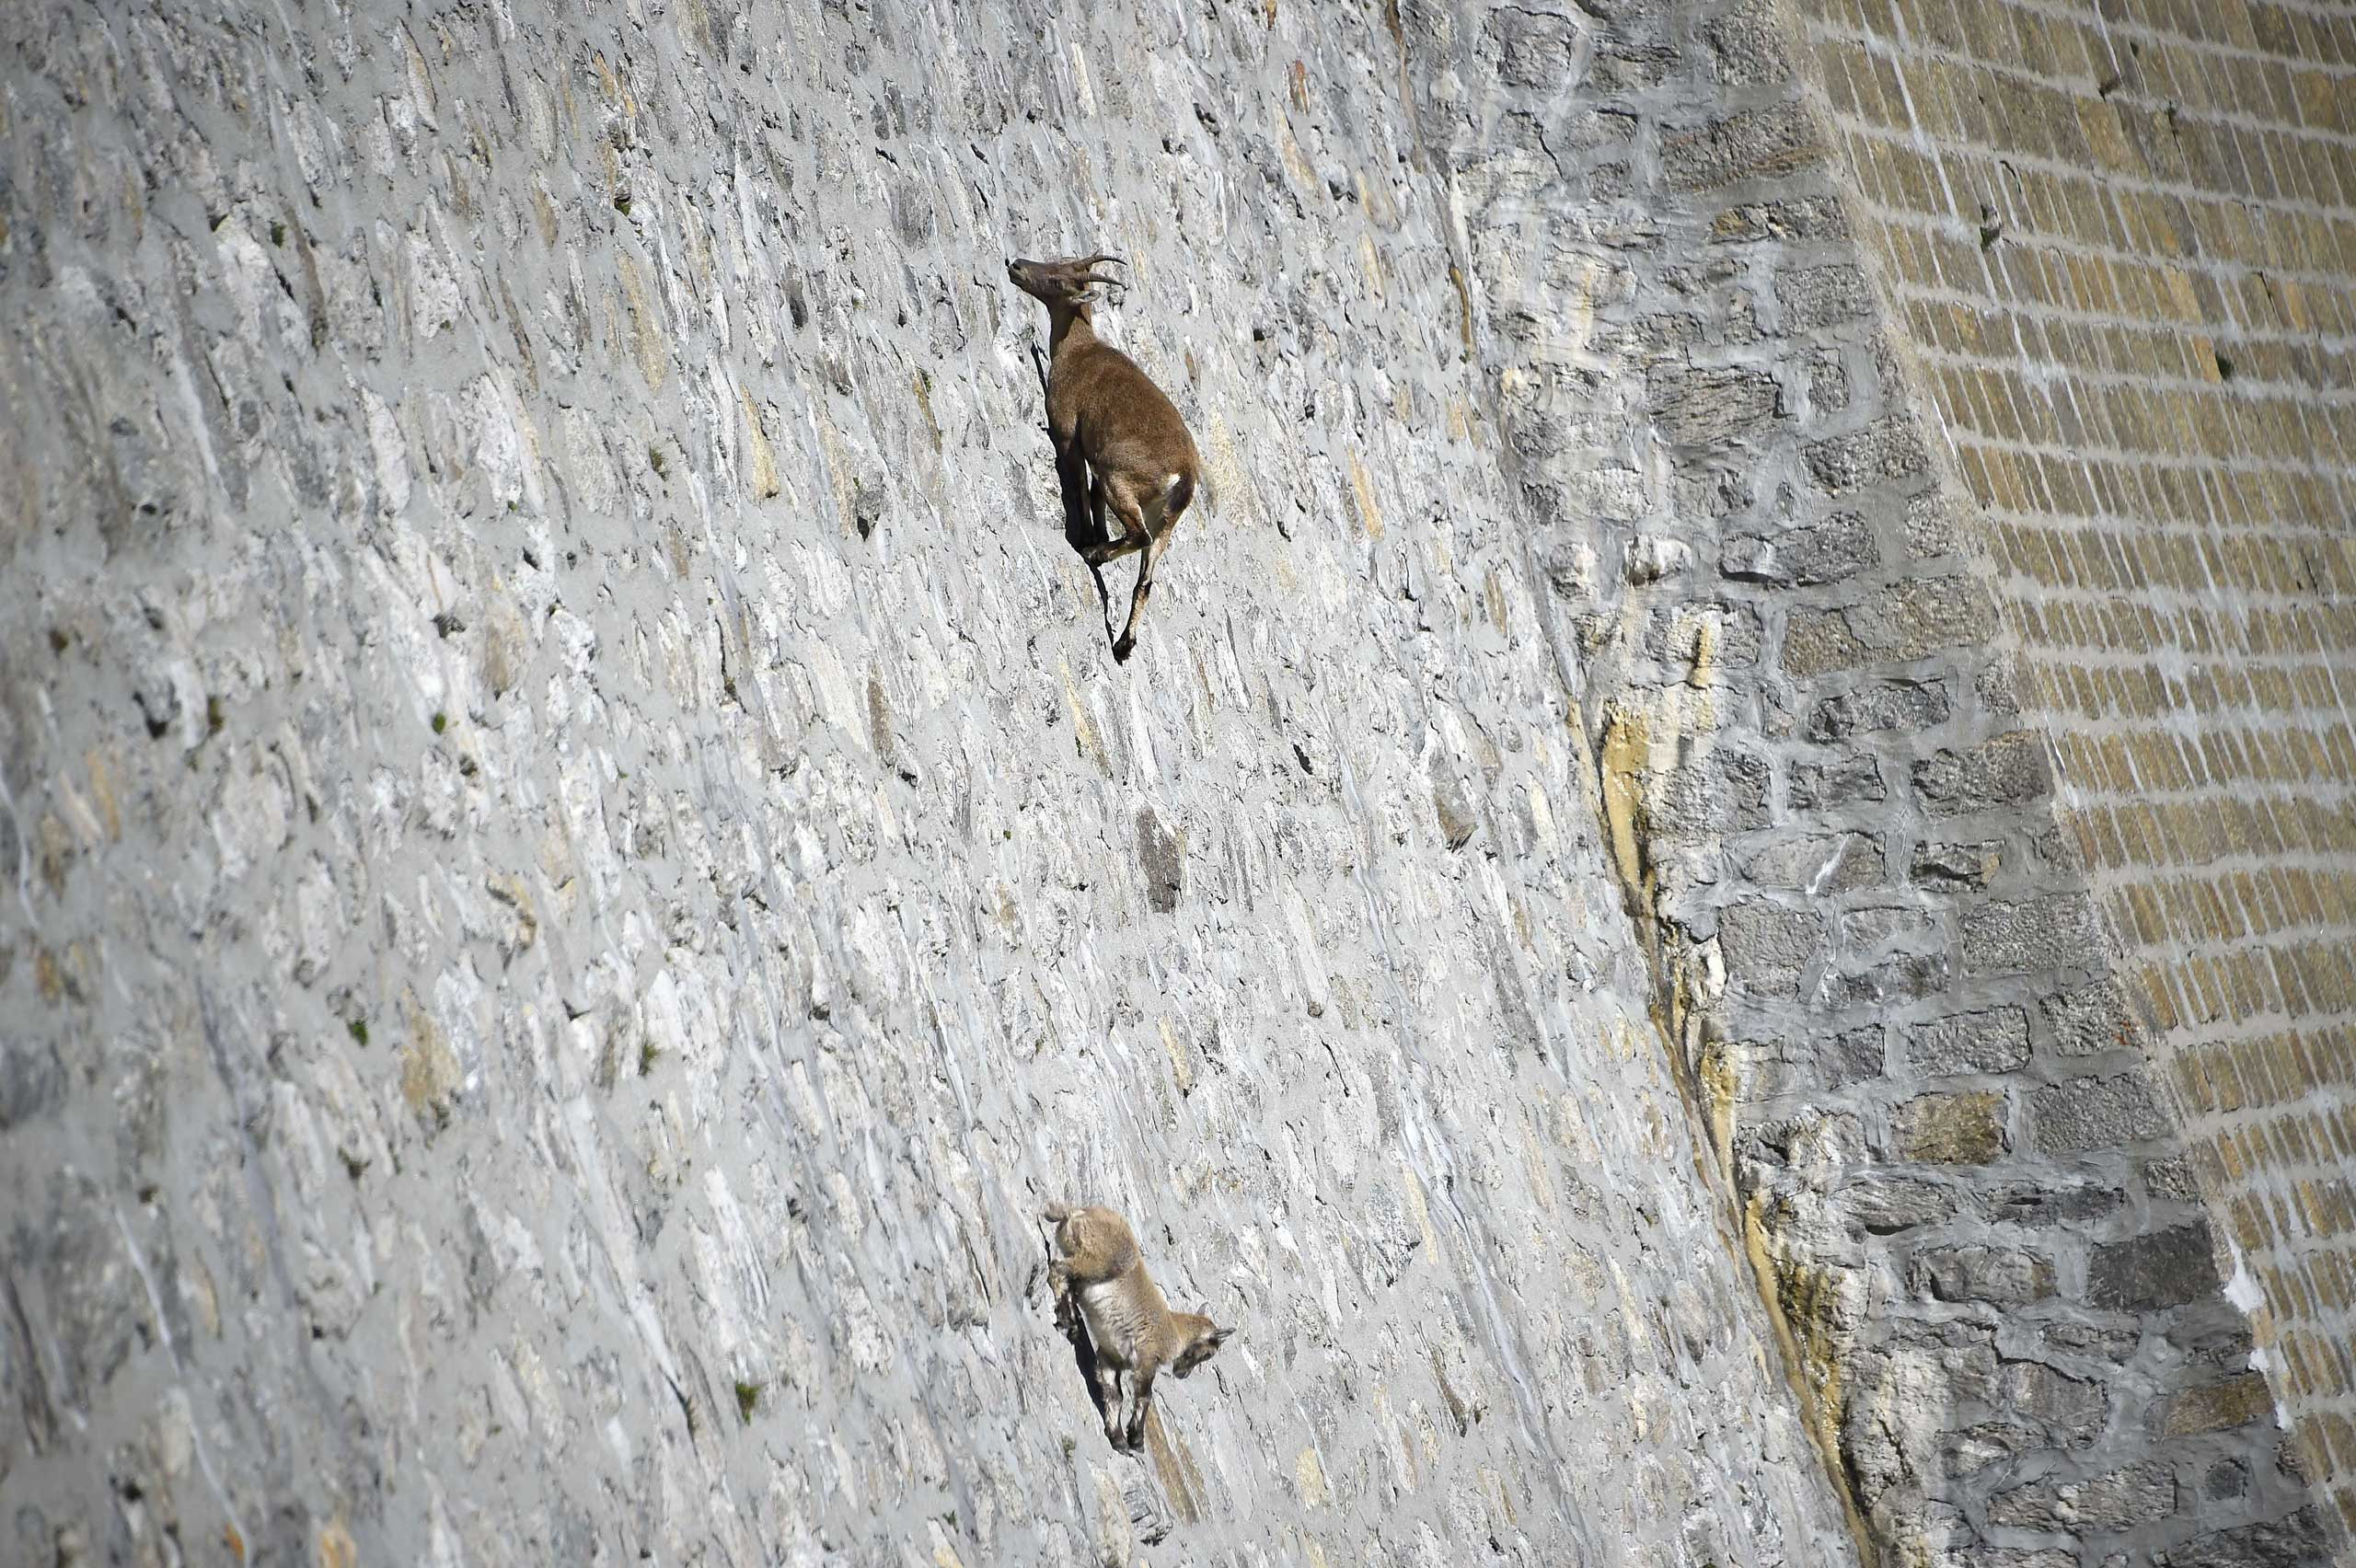 Sept. 22, 2014.                               A female Alpine Ibex, a species of wild goat that lives in the mountains of the European Alps, licks stones on a vertical dam at the lake Cingino, Italy.